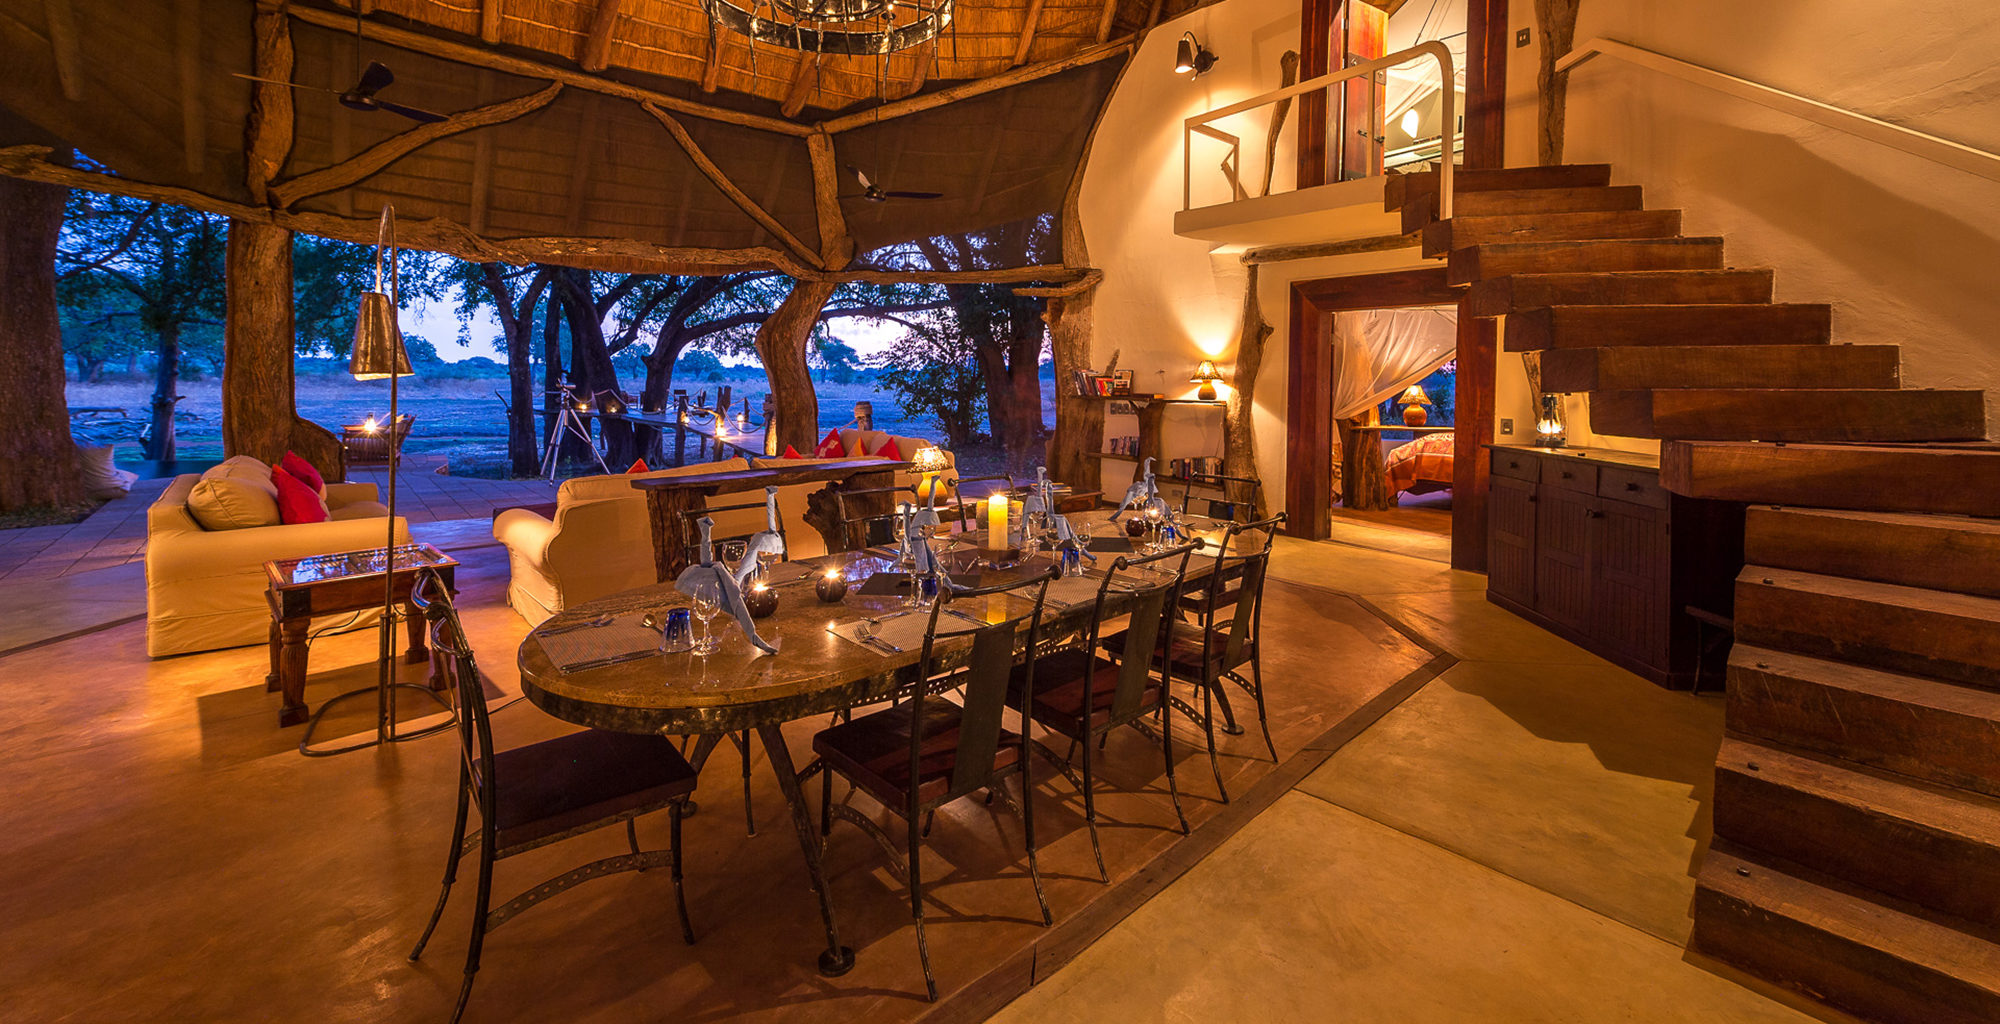 Zambia-Luangwa-Safari-House-Dining